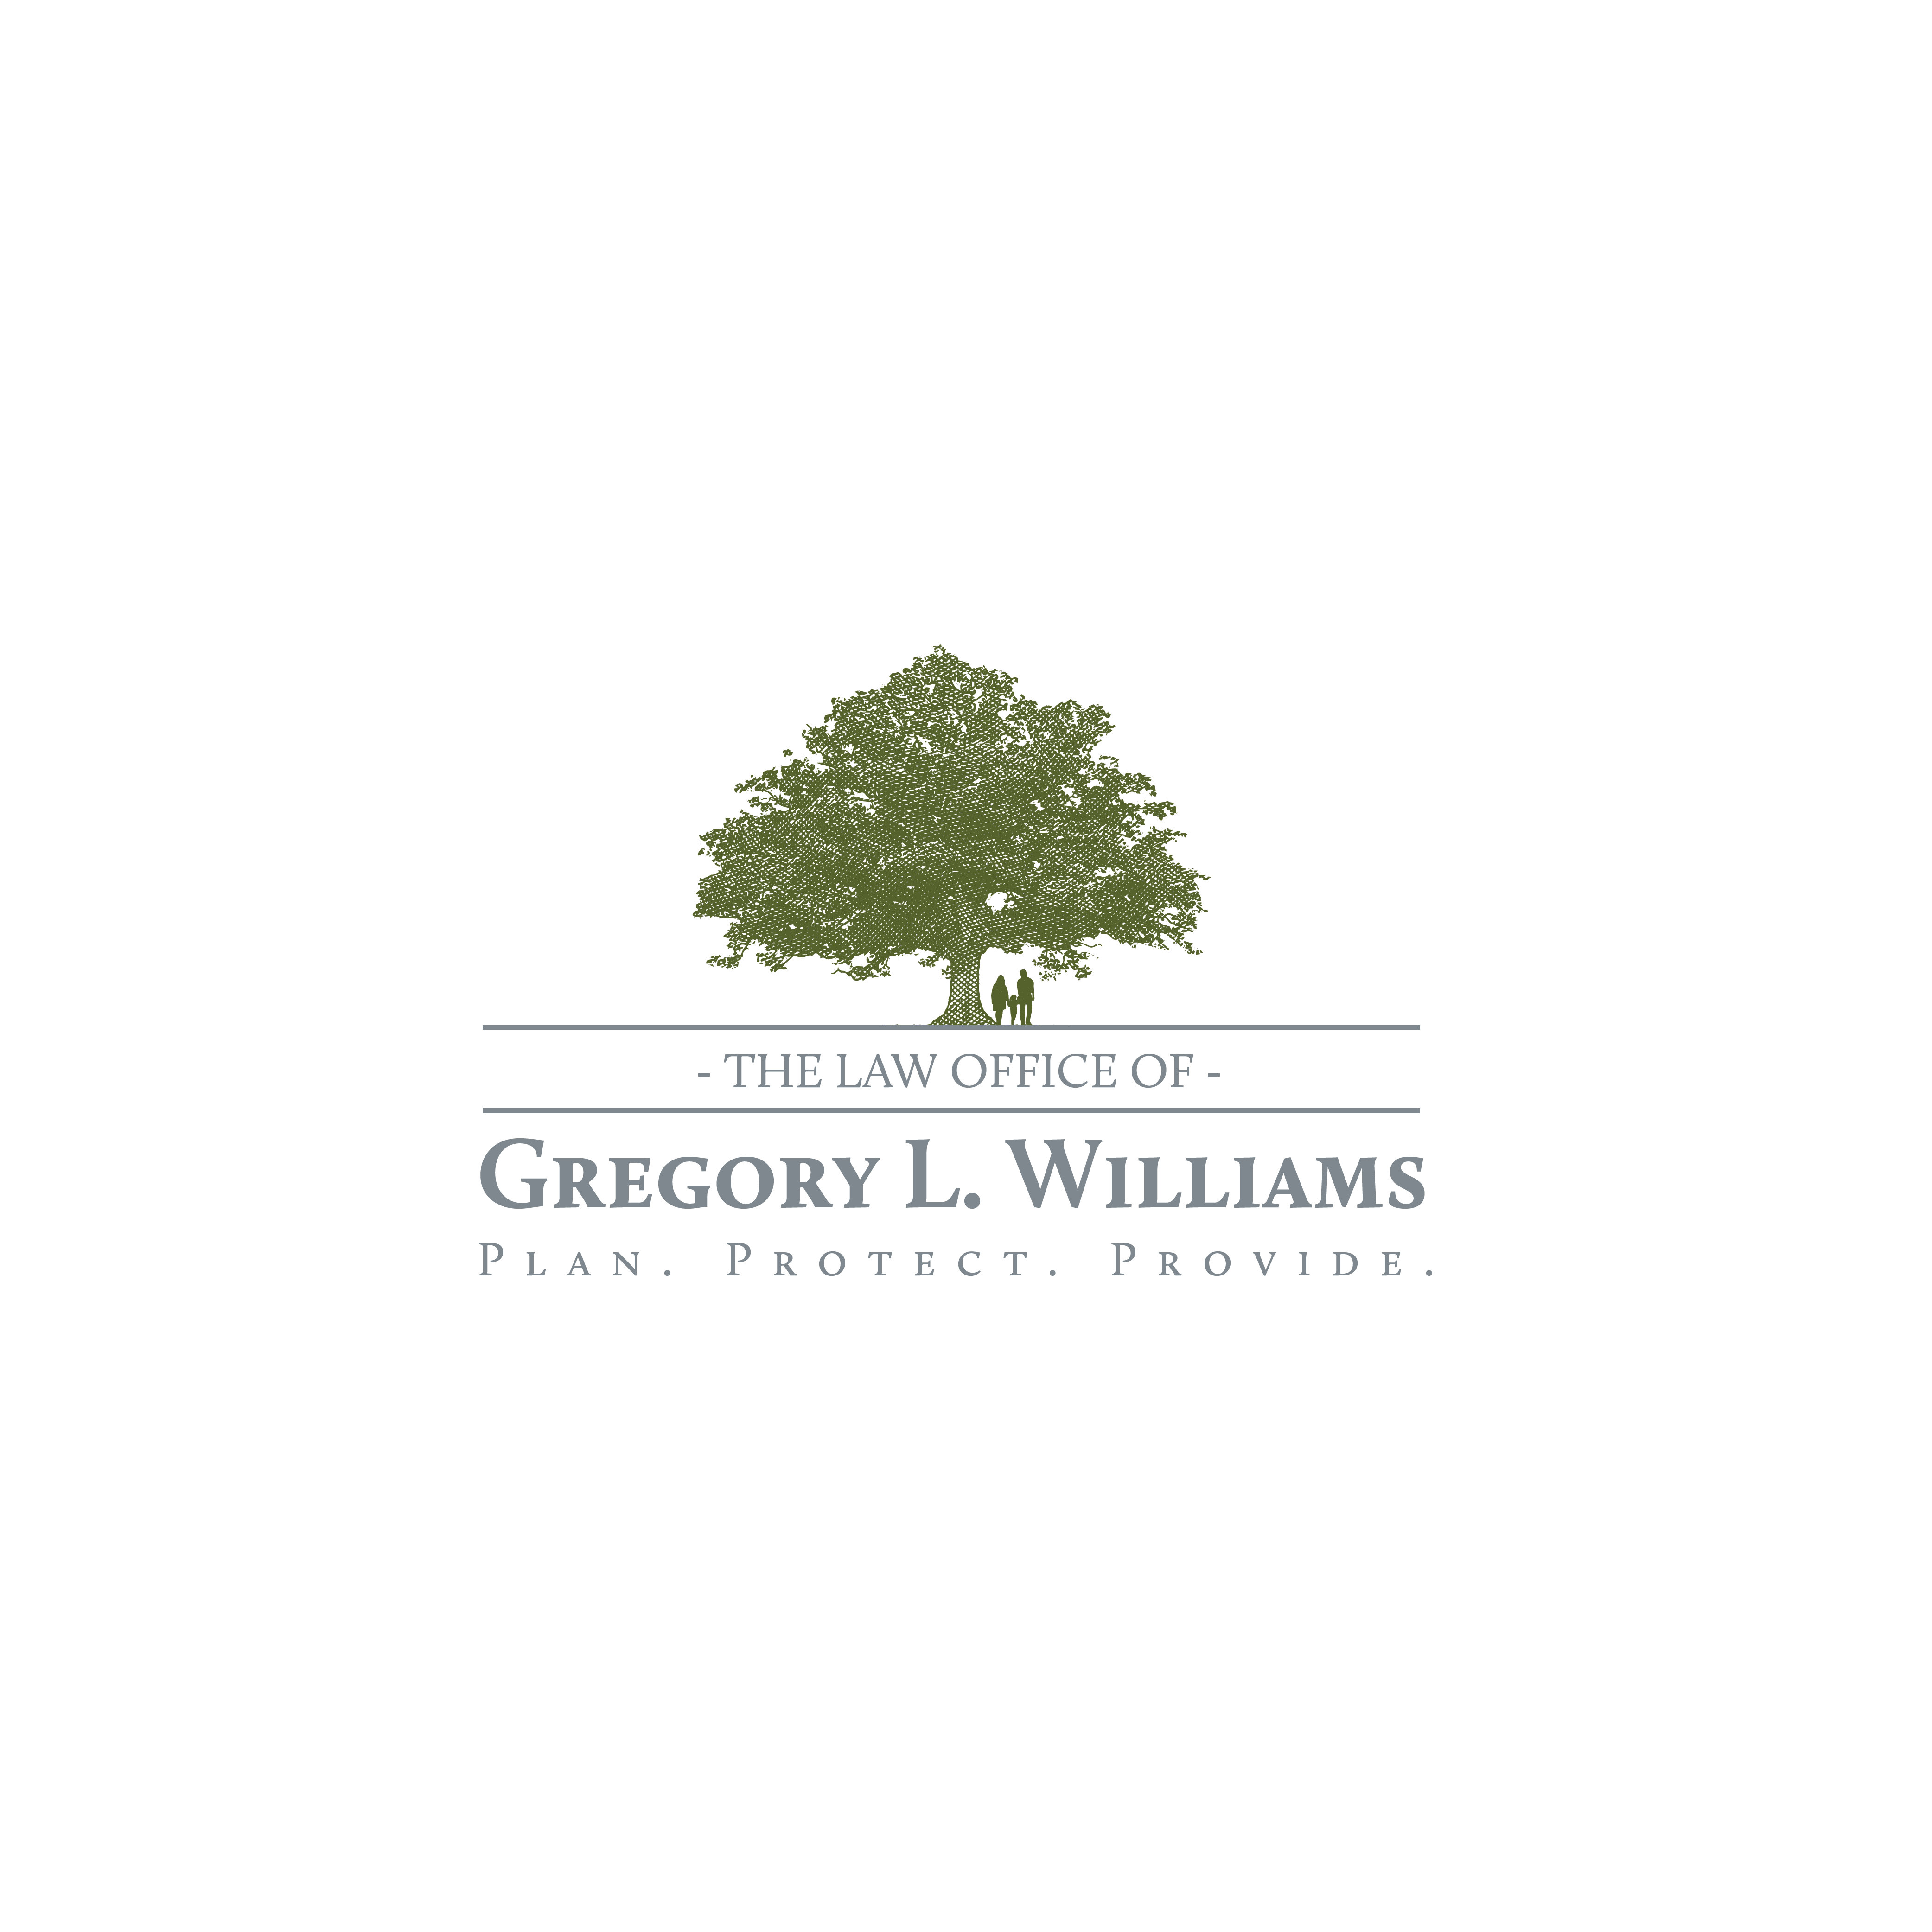 Design a logo for an estate planning and elder law practice for Gen X and Millennial families.